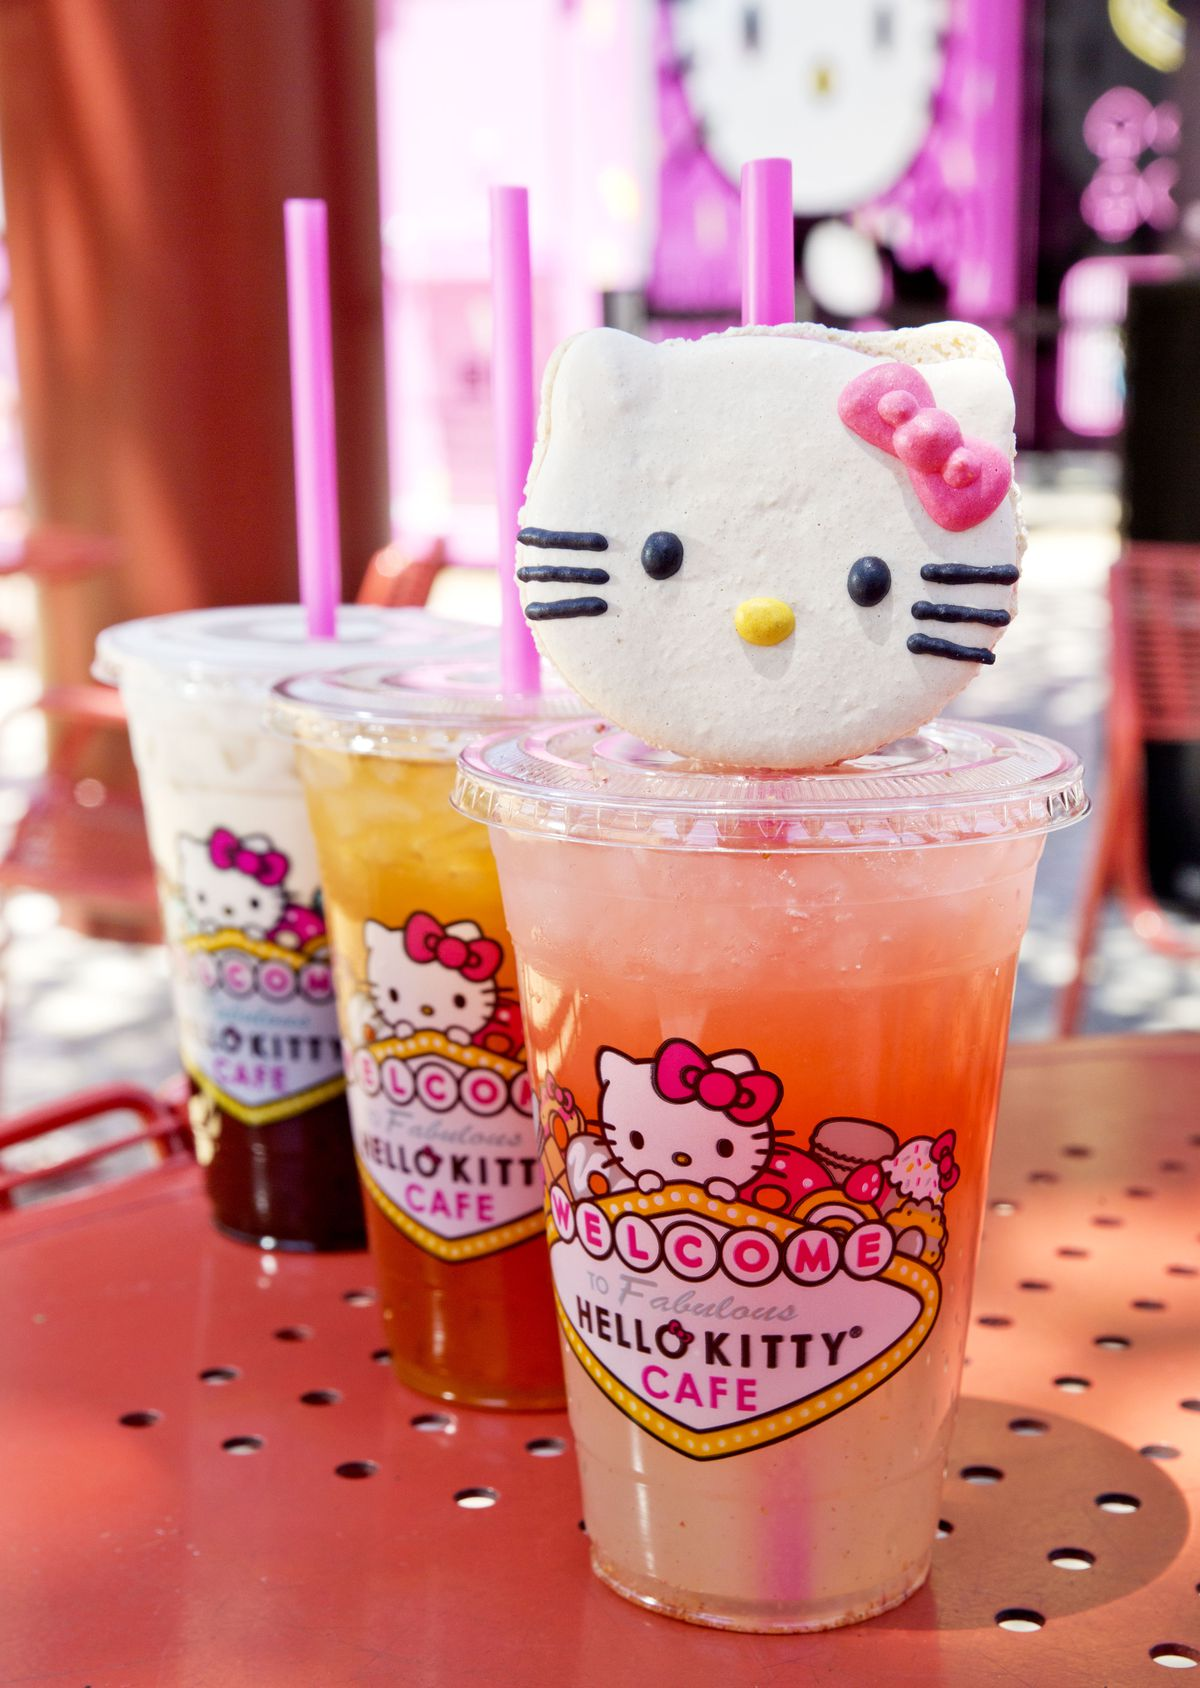 Drinks at the Hello Kitty Cafe